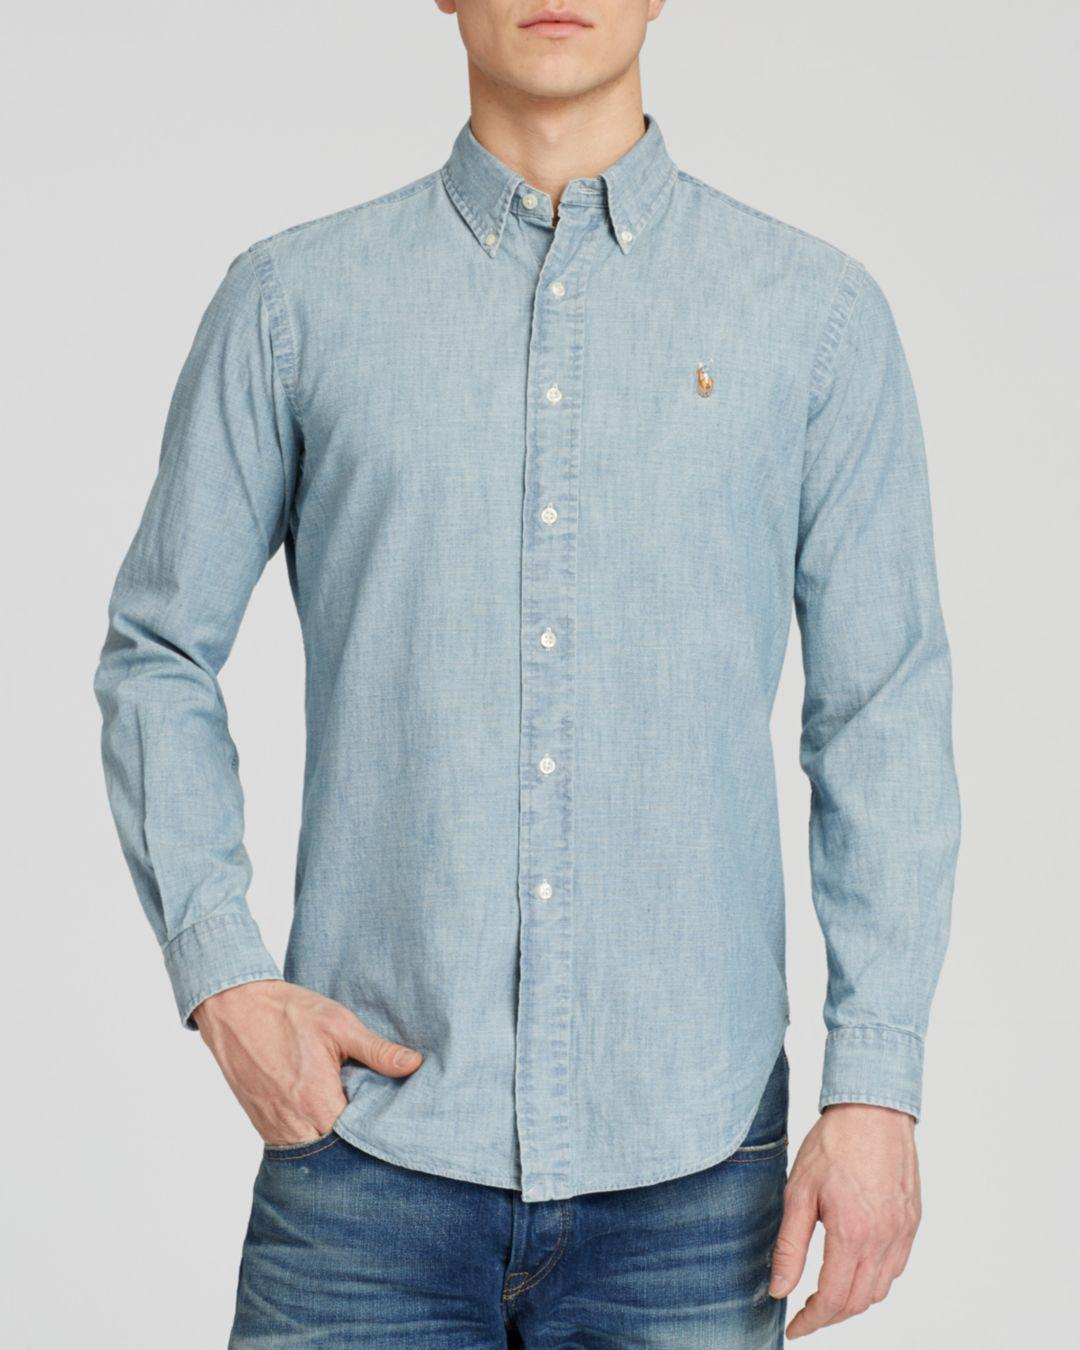 678bbad46bd Lyst - Polo Ralph Lauren Chambray Button-down Shirt - Classic Fit in ...